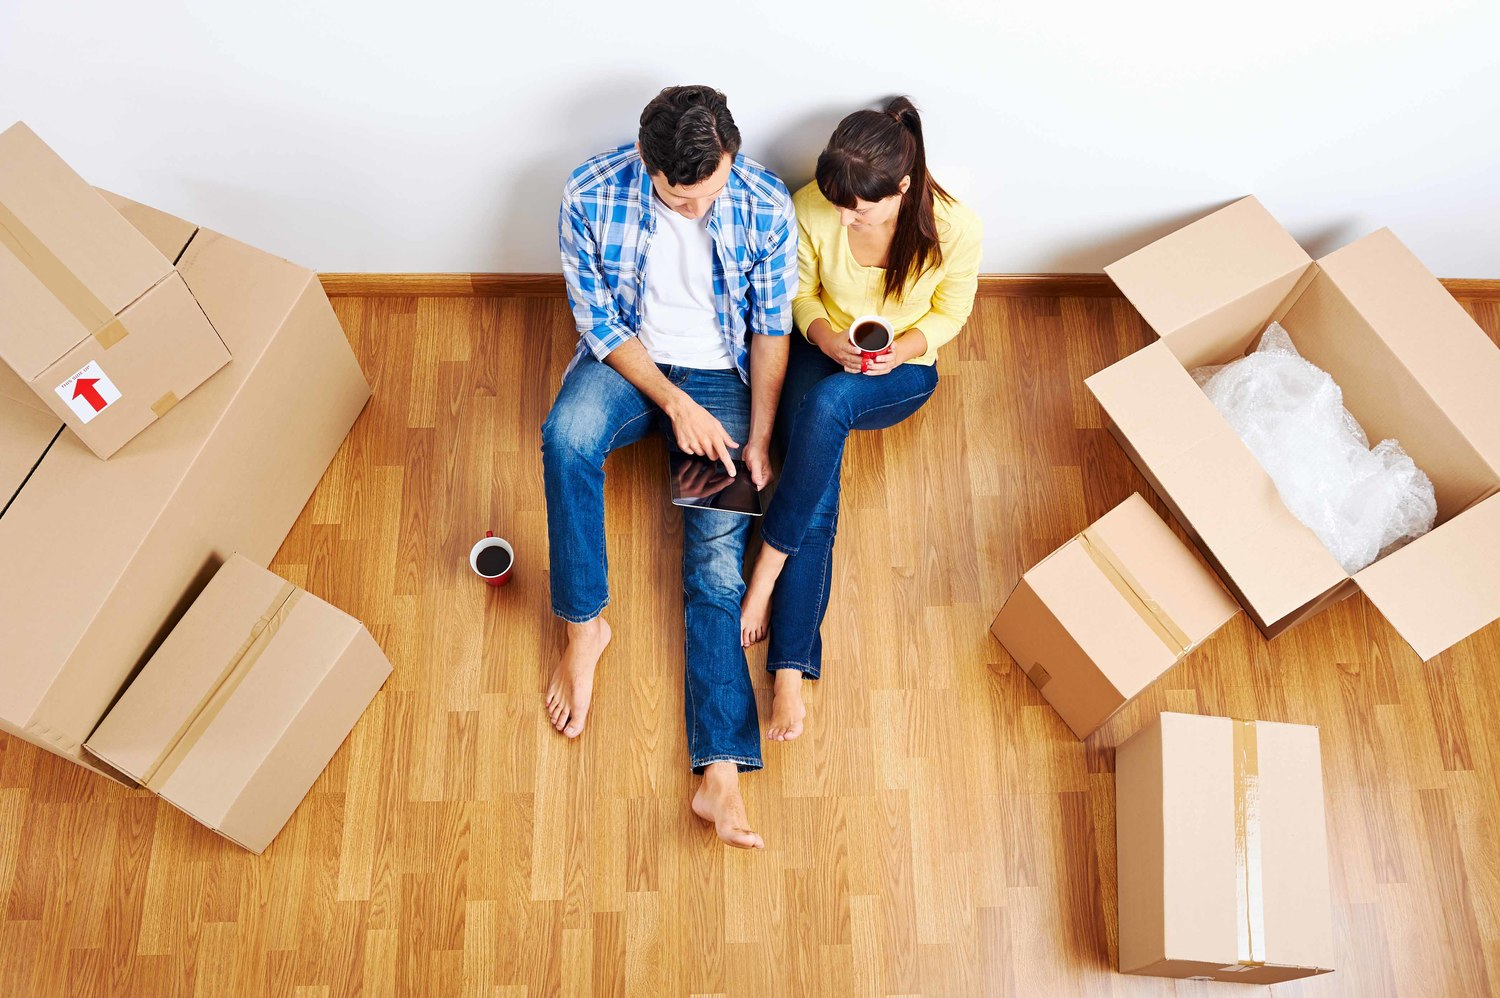 young couple sitting on the floor near the boxes choosing movers on tablet